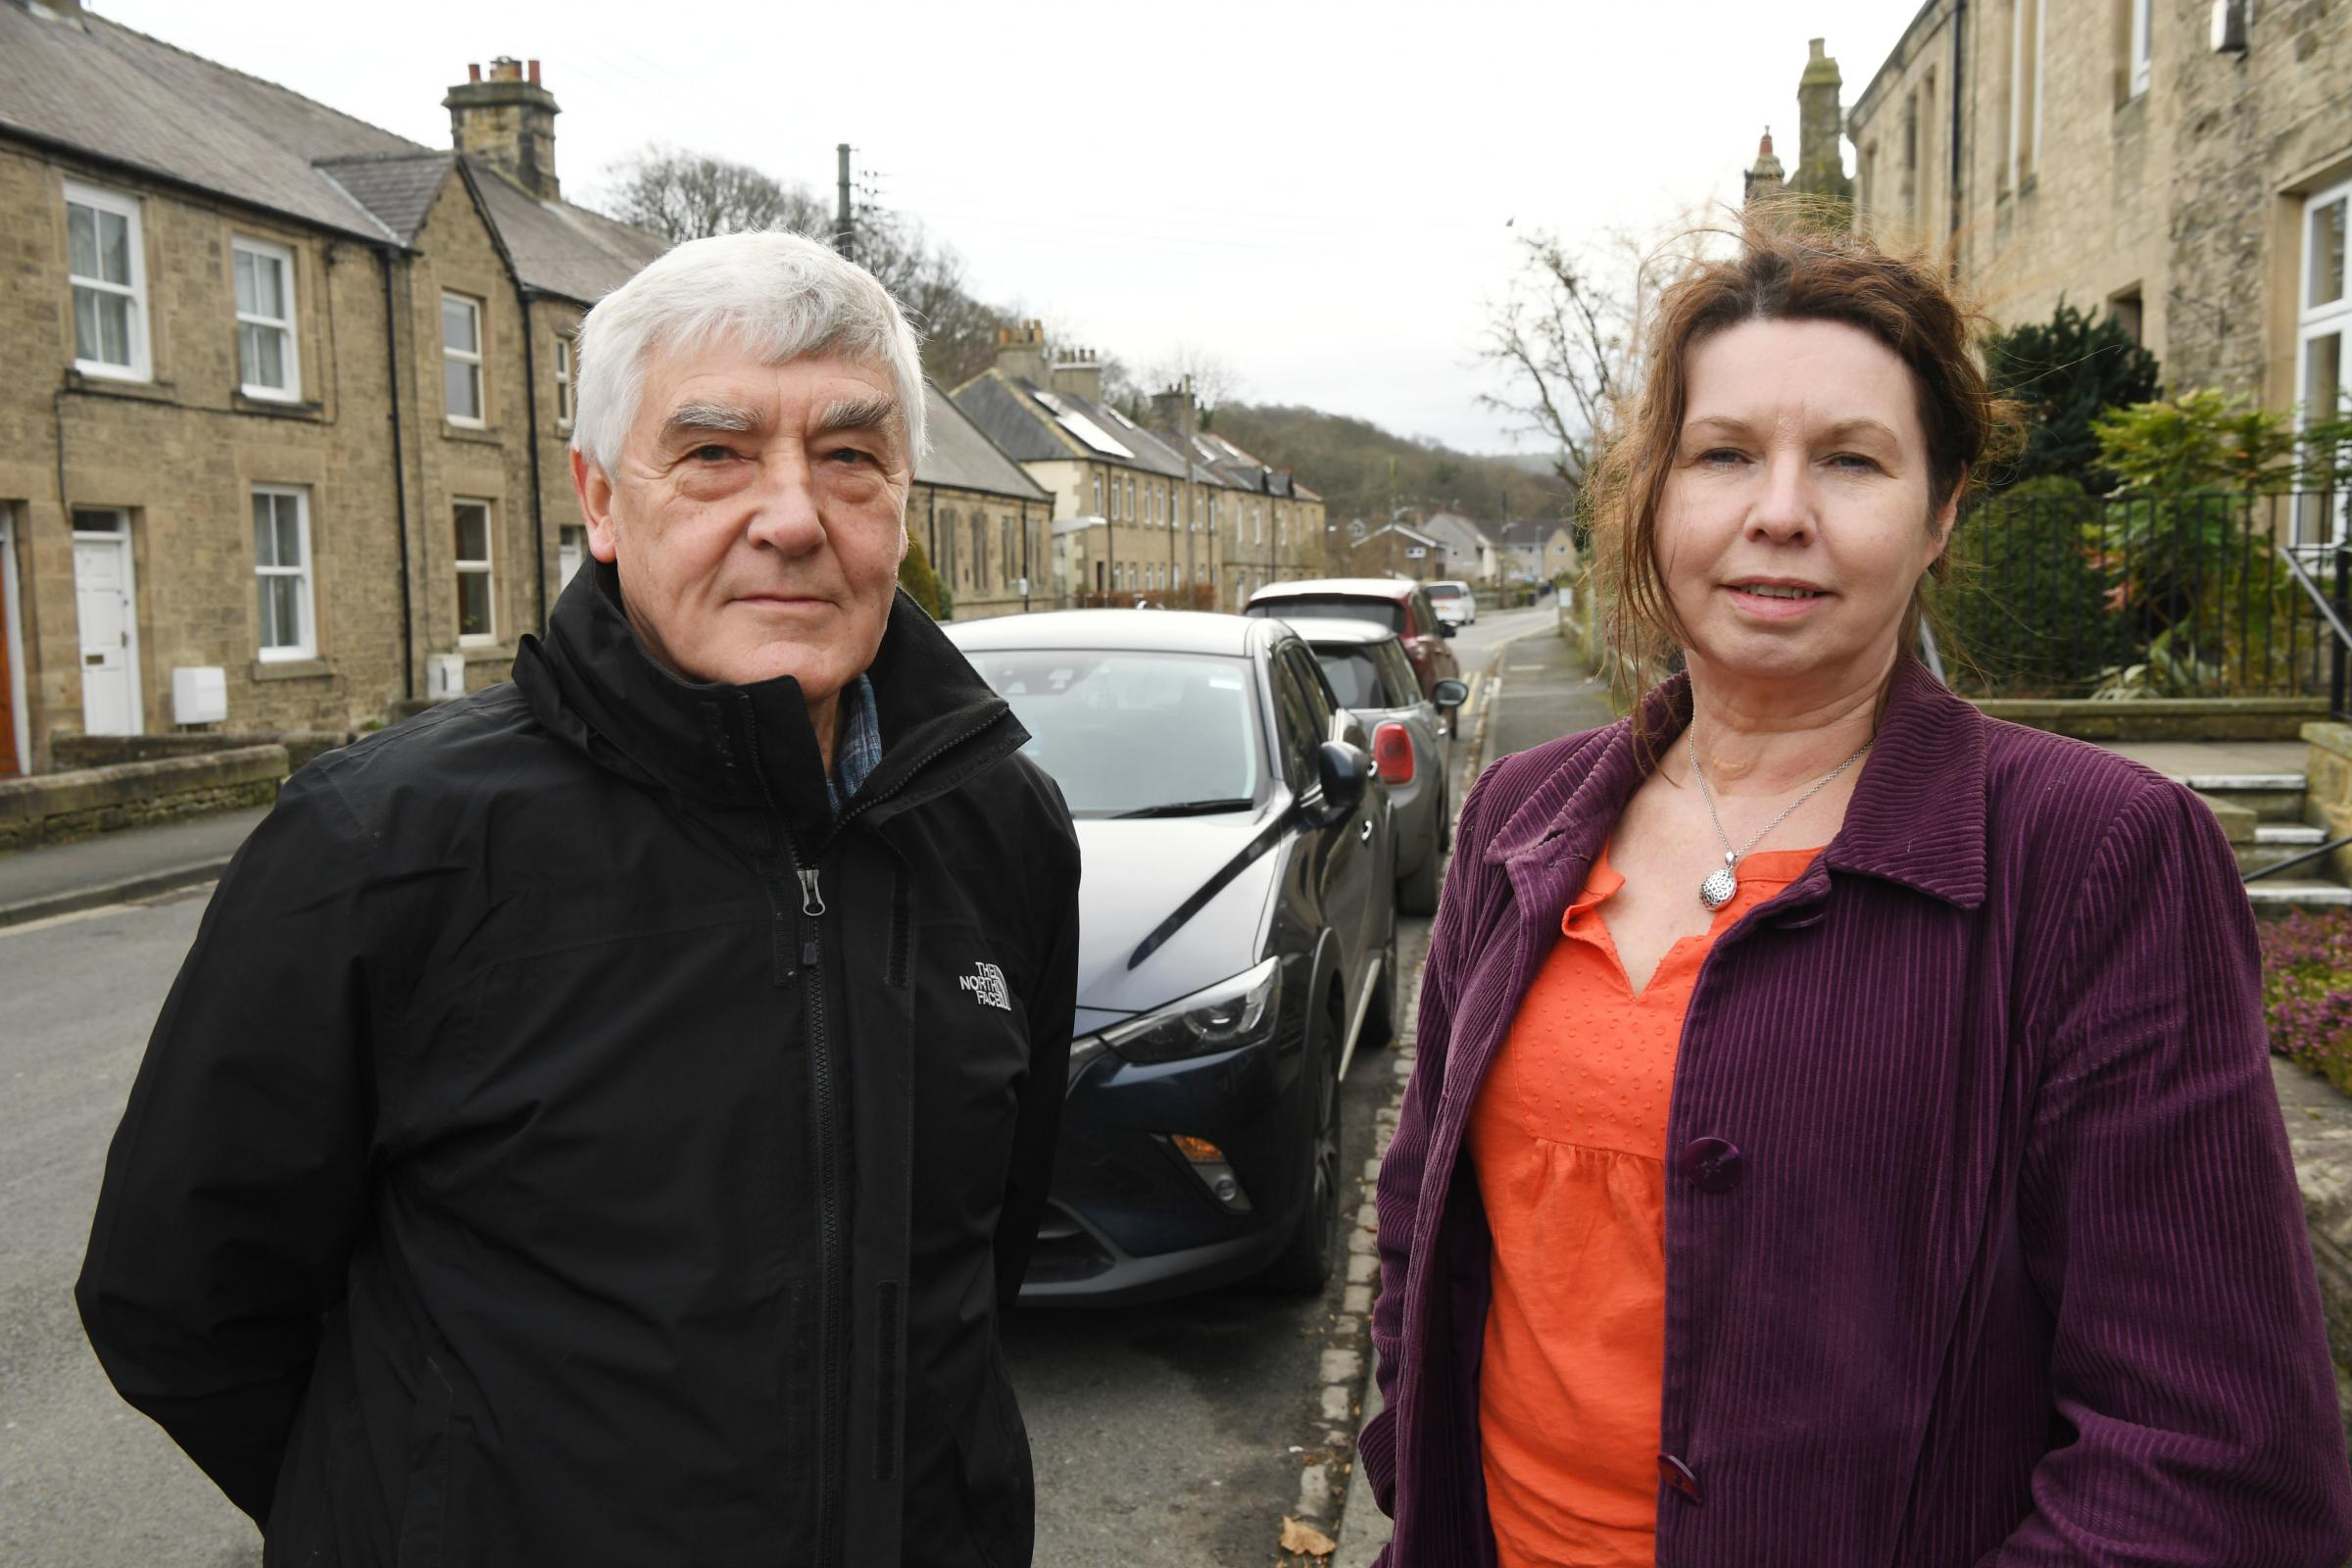 Norman Hooks and Alison Richardson, board members of SCATA, hope to launch a community transport scheme in Stocksfield. 						Photo: HX071917